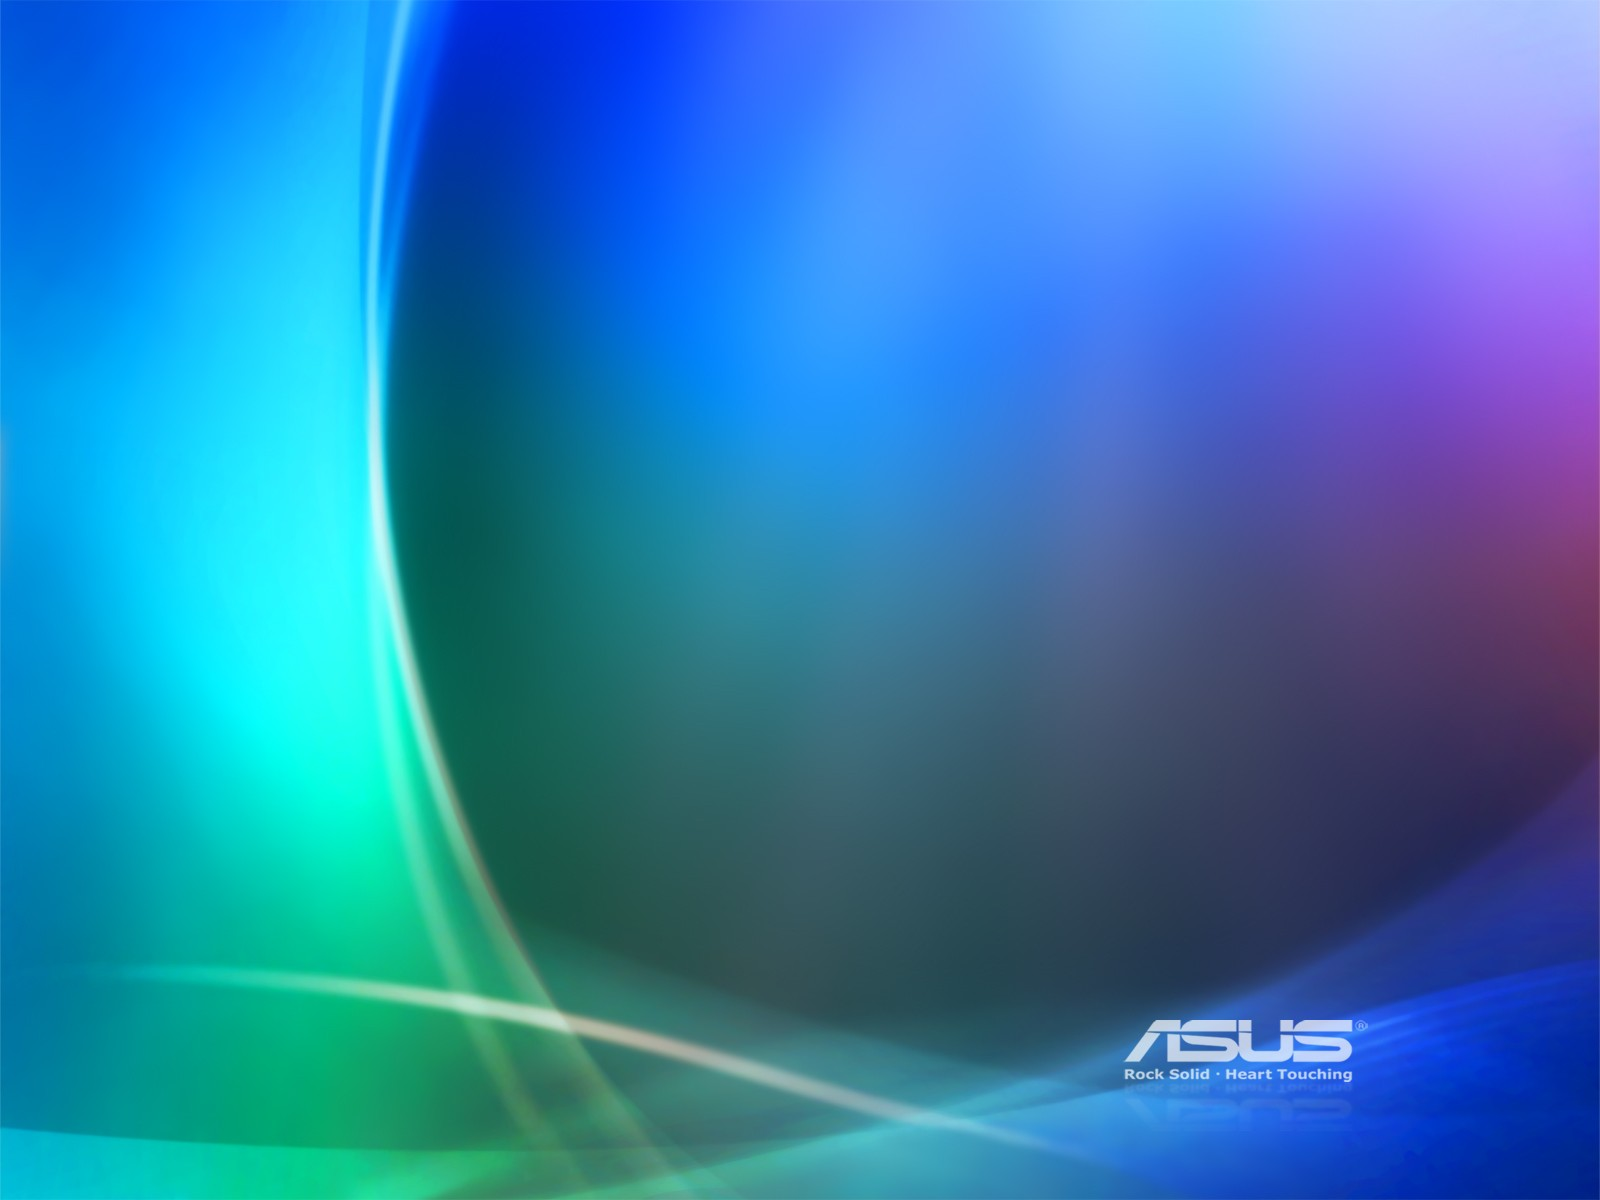 Wallpaper For Laptop: Wallpapers For Asus Laptops